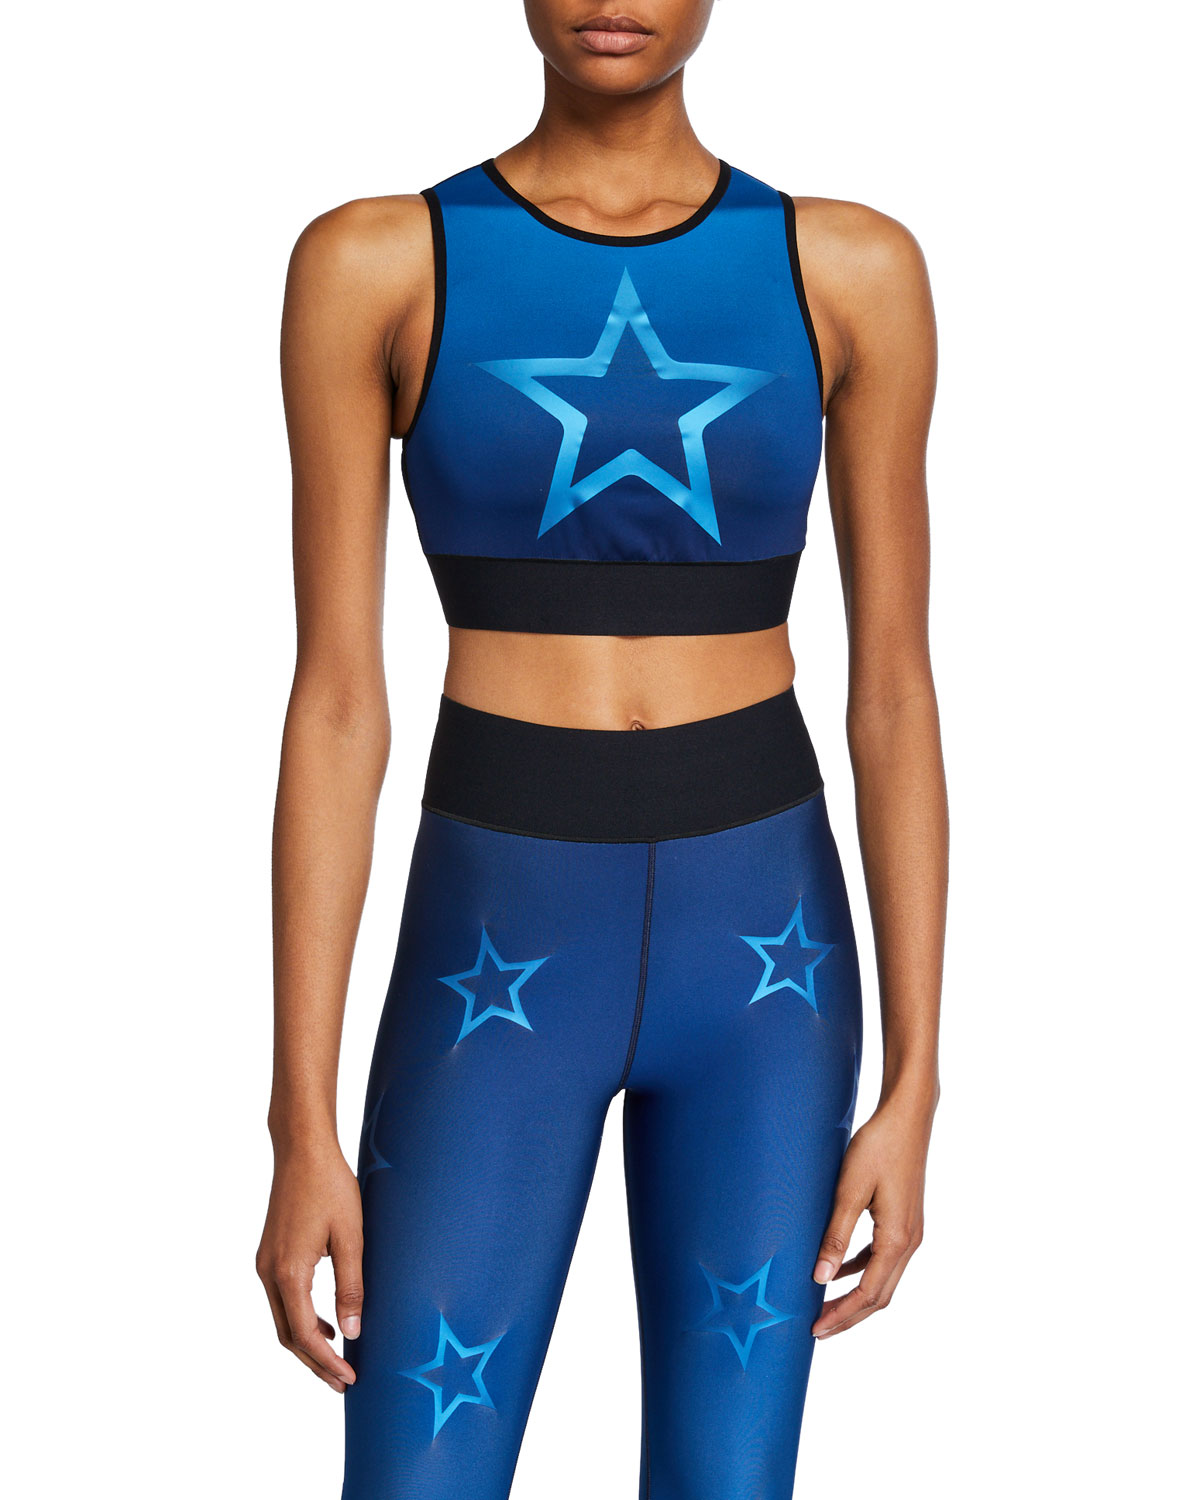 Ultracor Tops LEVEL GRADIENT DROPOUT STAR CROP TOP